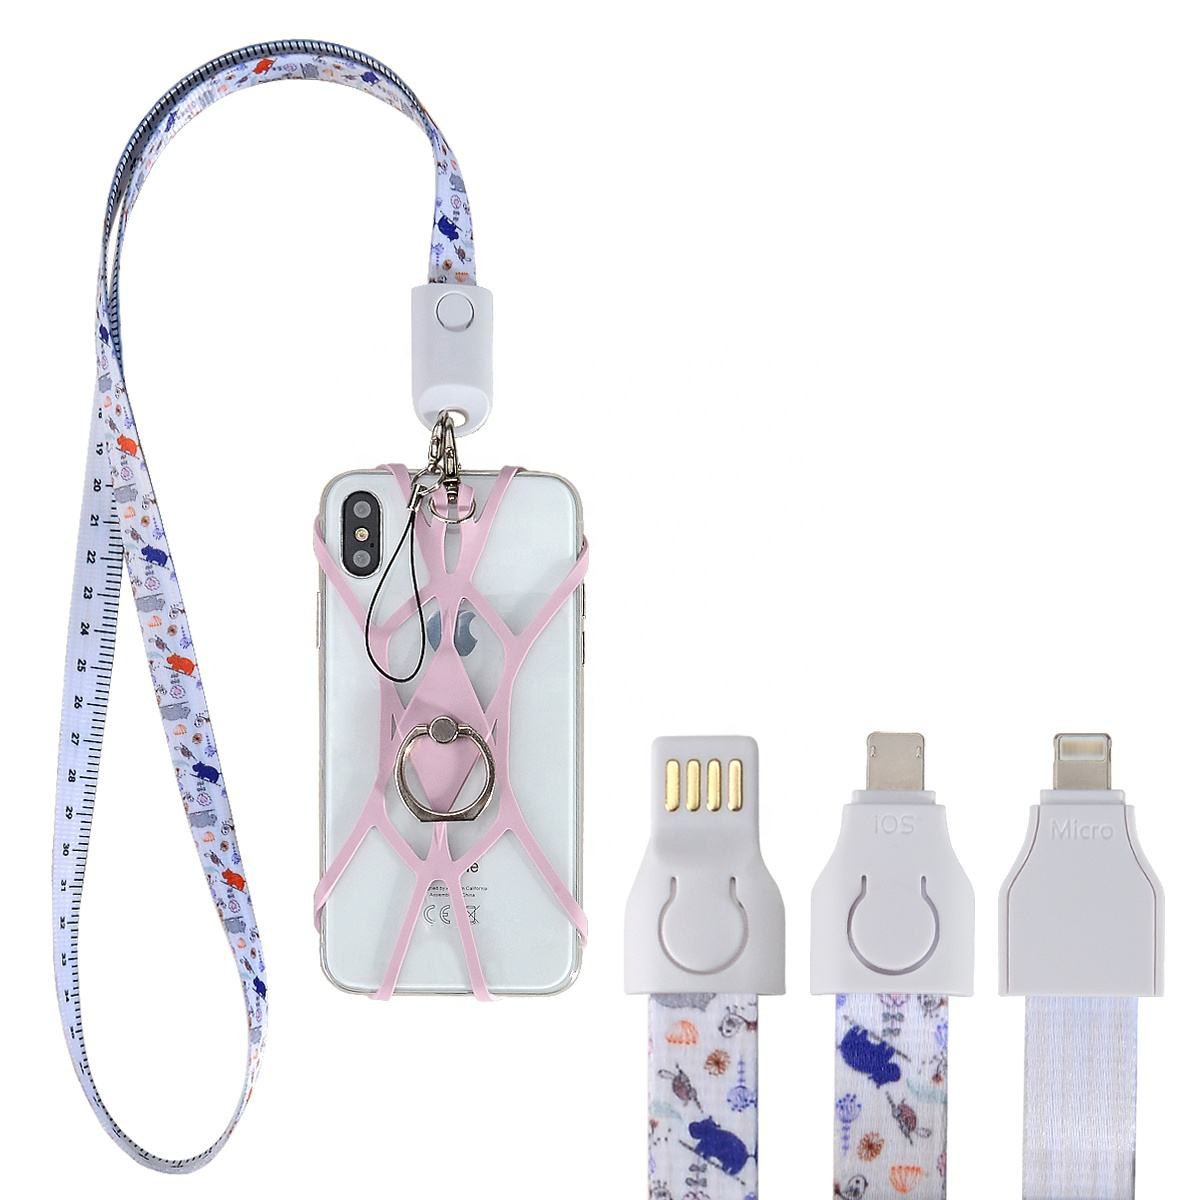 2020 new arrival USB Charging silicone Cable Neck Strap lanyard for Cell Phone